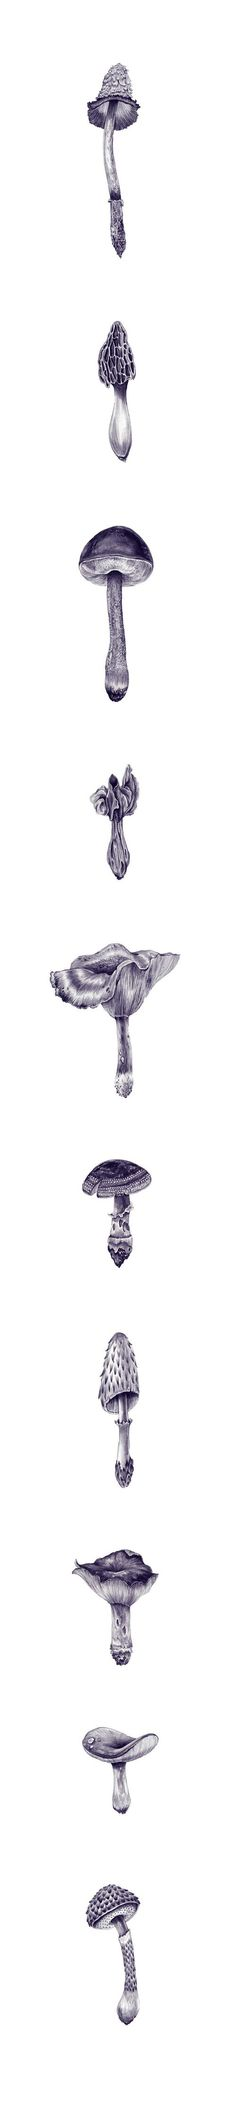 Drawings by Eibatova Karina.